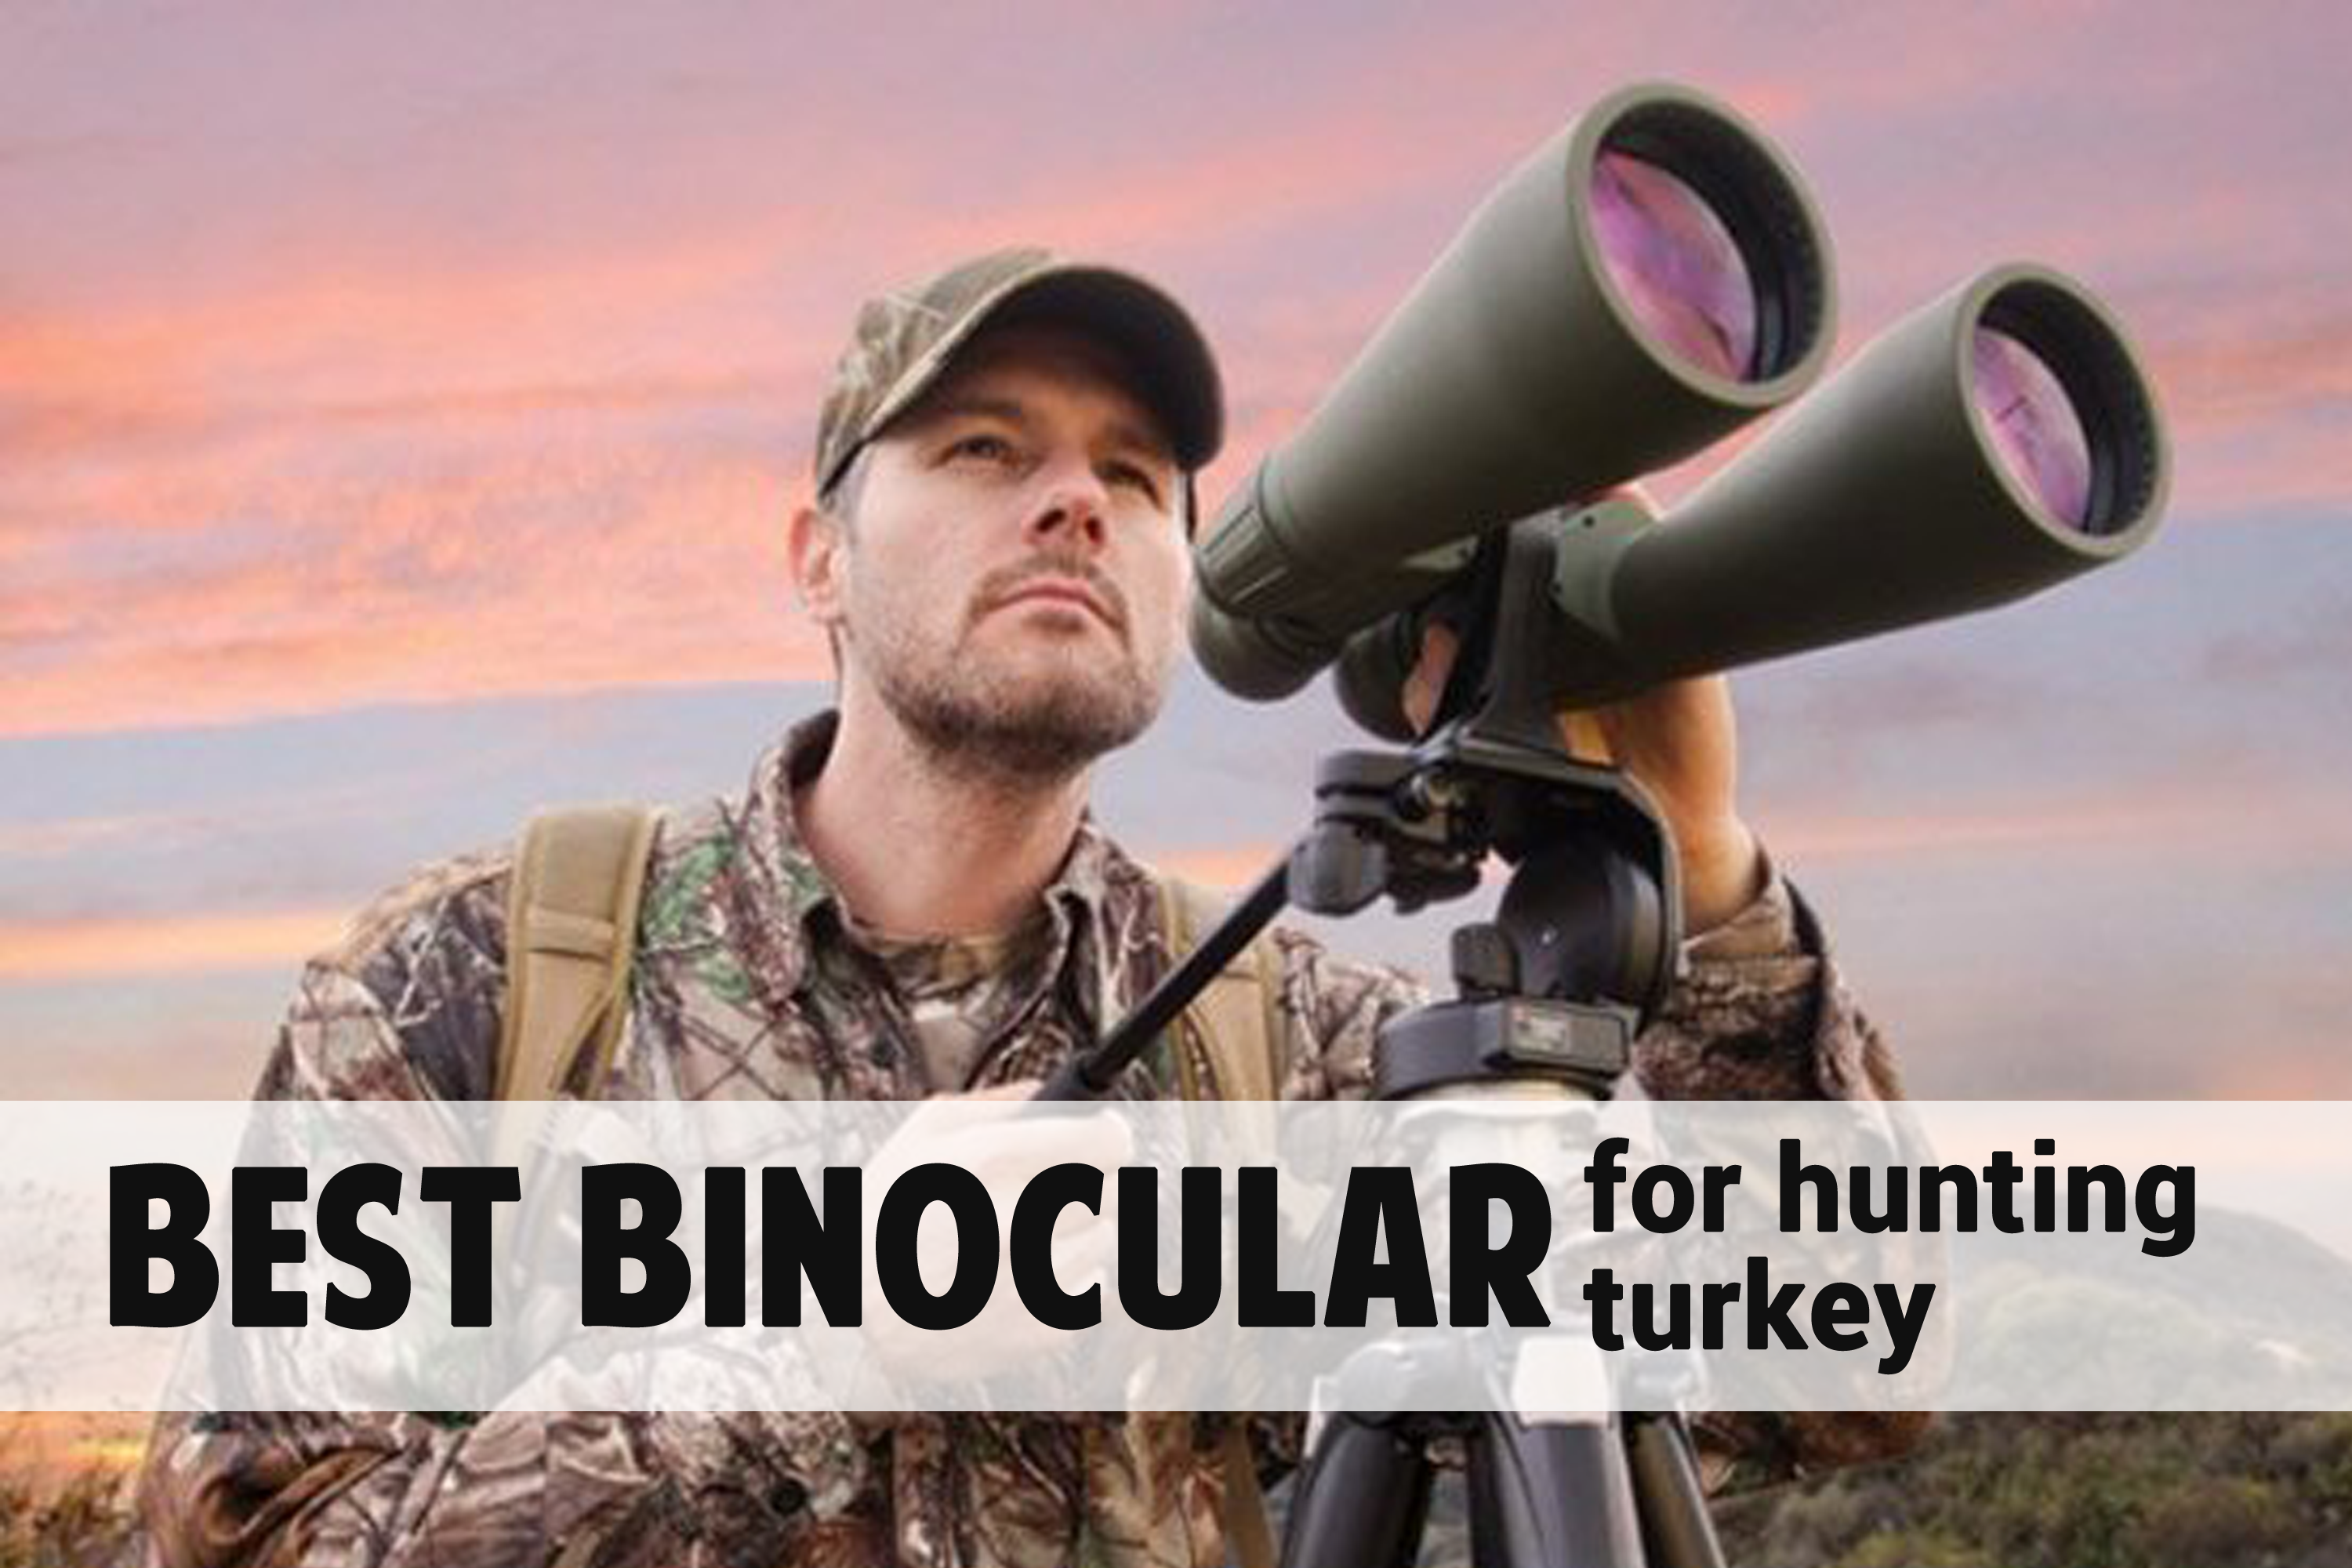 best binocular for hunting turkey